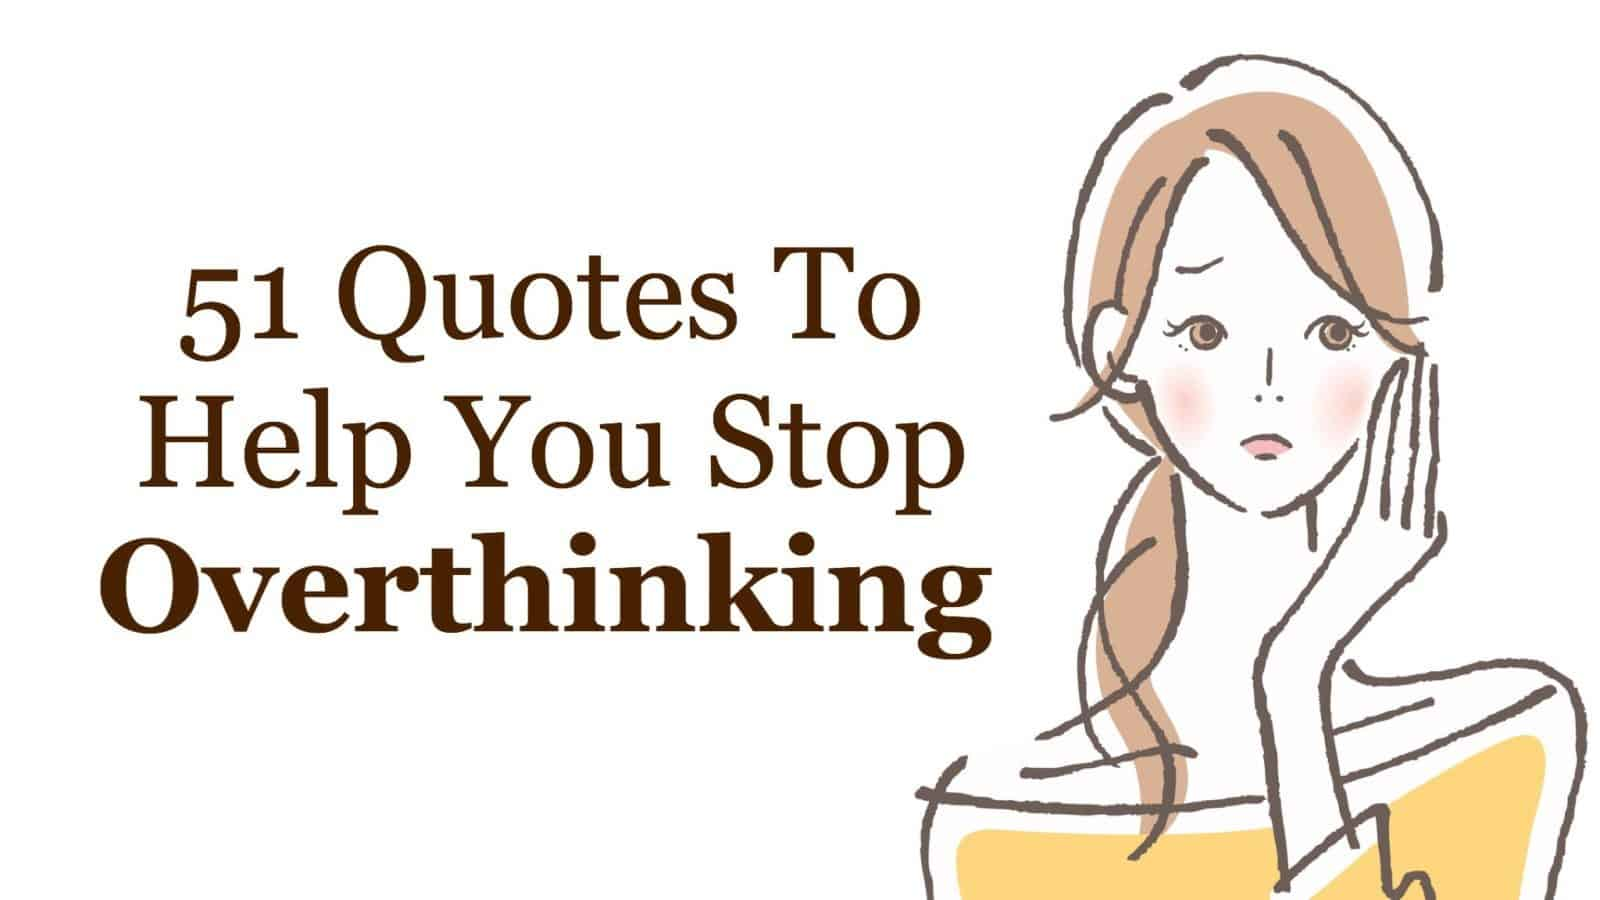 Help Quotes 51 Quotes To Help You Stop Over Thinking